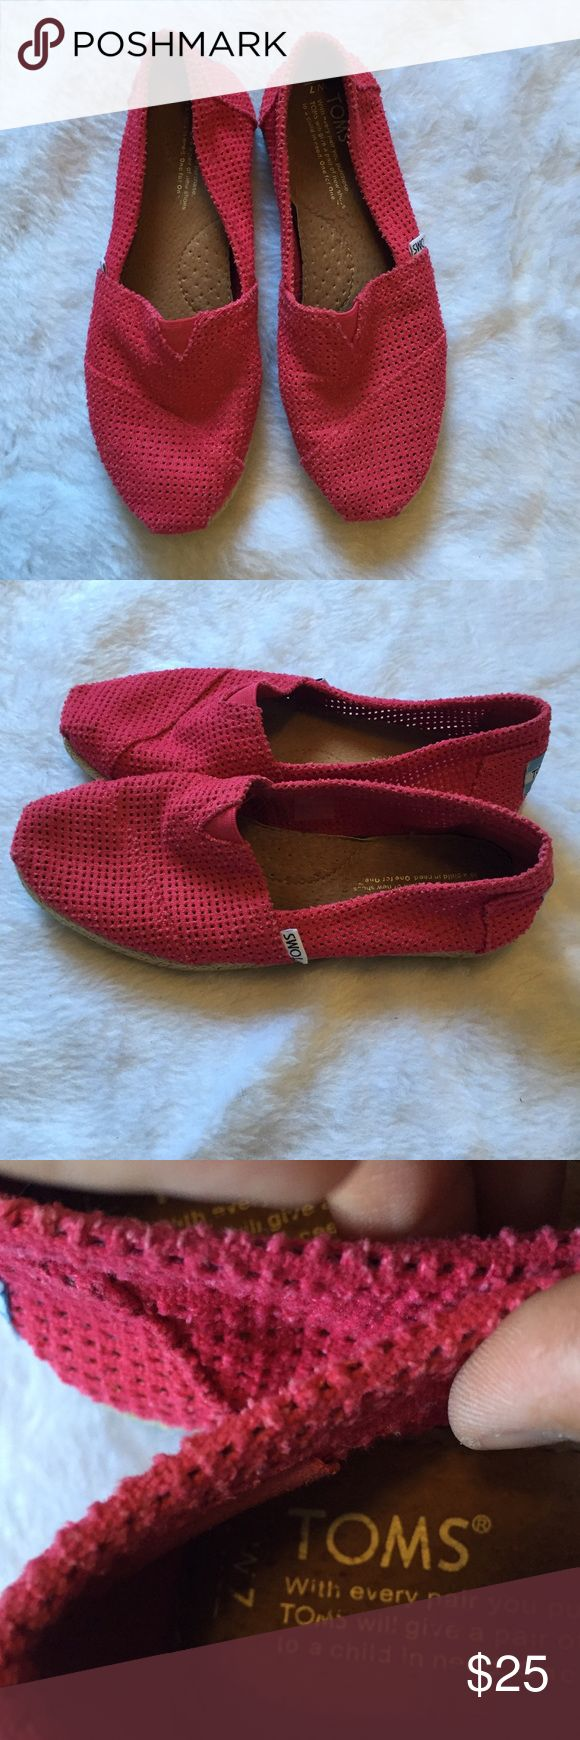 Red toms 🎀 red perforated toms 🎀 Gently used  🎀 size 7 runs little big would fit 7.5 🎀Please ask for additional pictures, measurements, or ask questions before purchase 🎀No trades or other apps. 🎀Ships next business day, unless otherwise noted in my closet 🎀Reasonable offers accepted  🎀Five star rating 🎀Bundle for discount TOMS Shoes